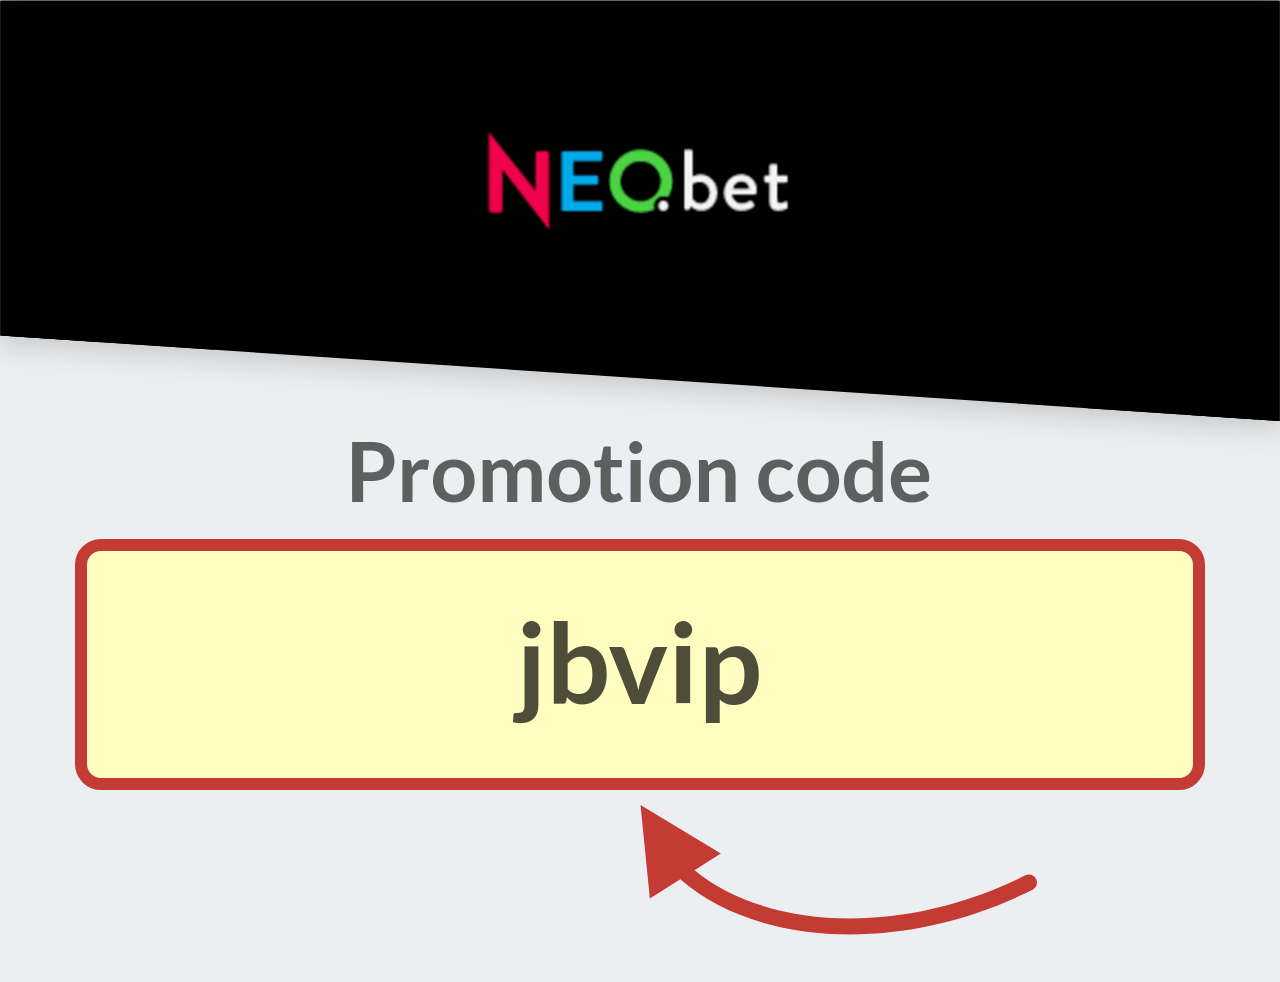 NEO.bet promotion code